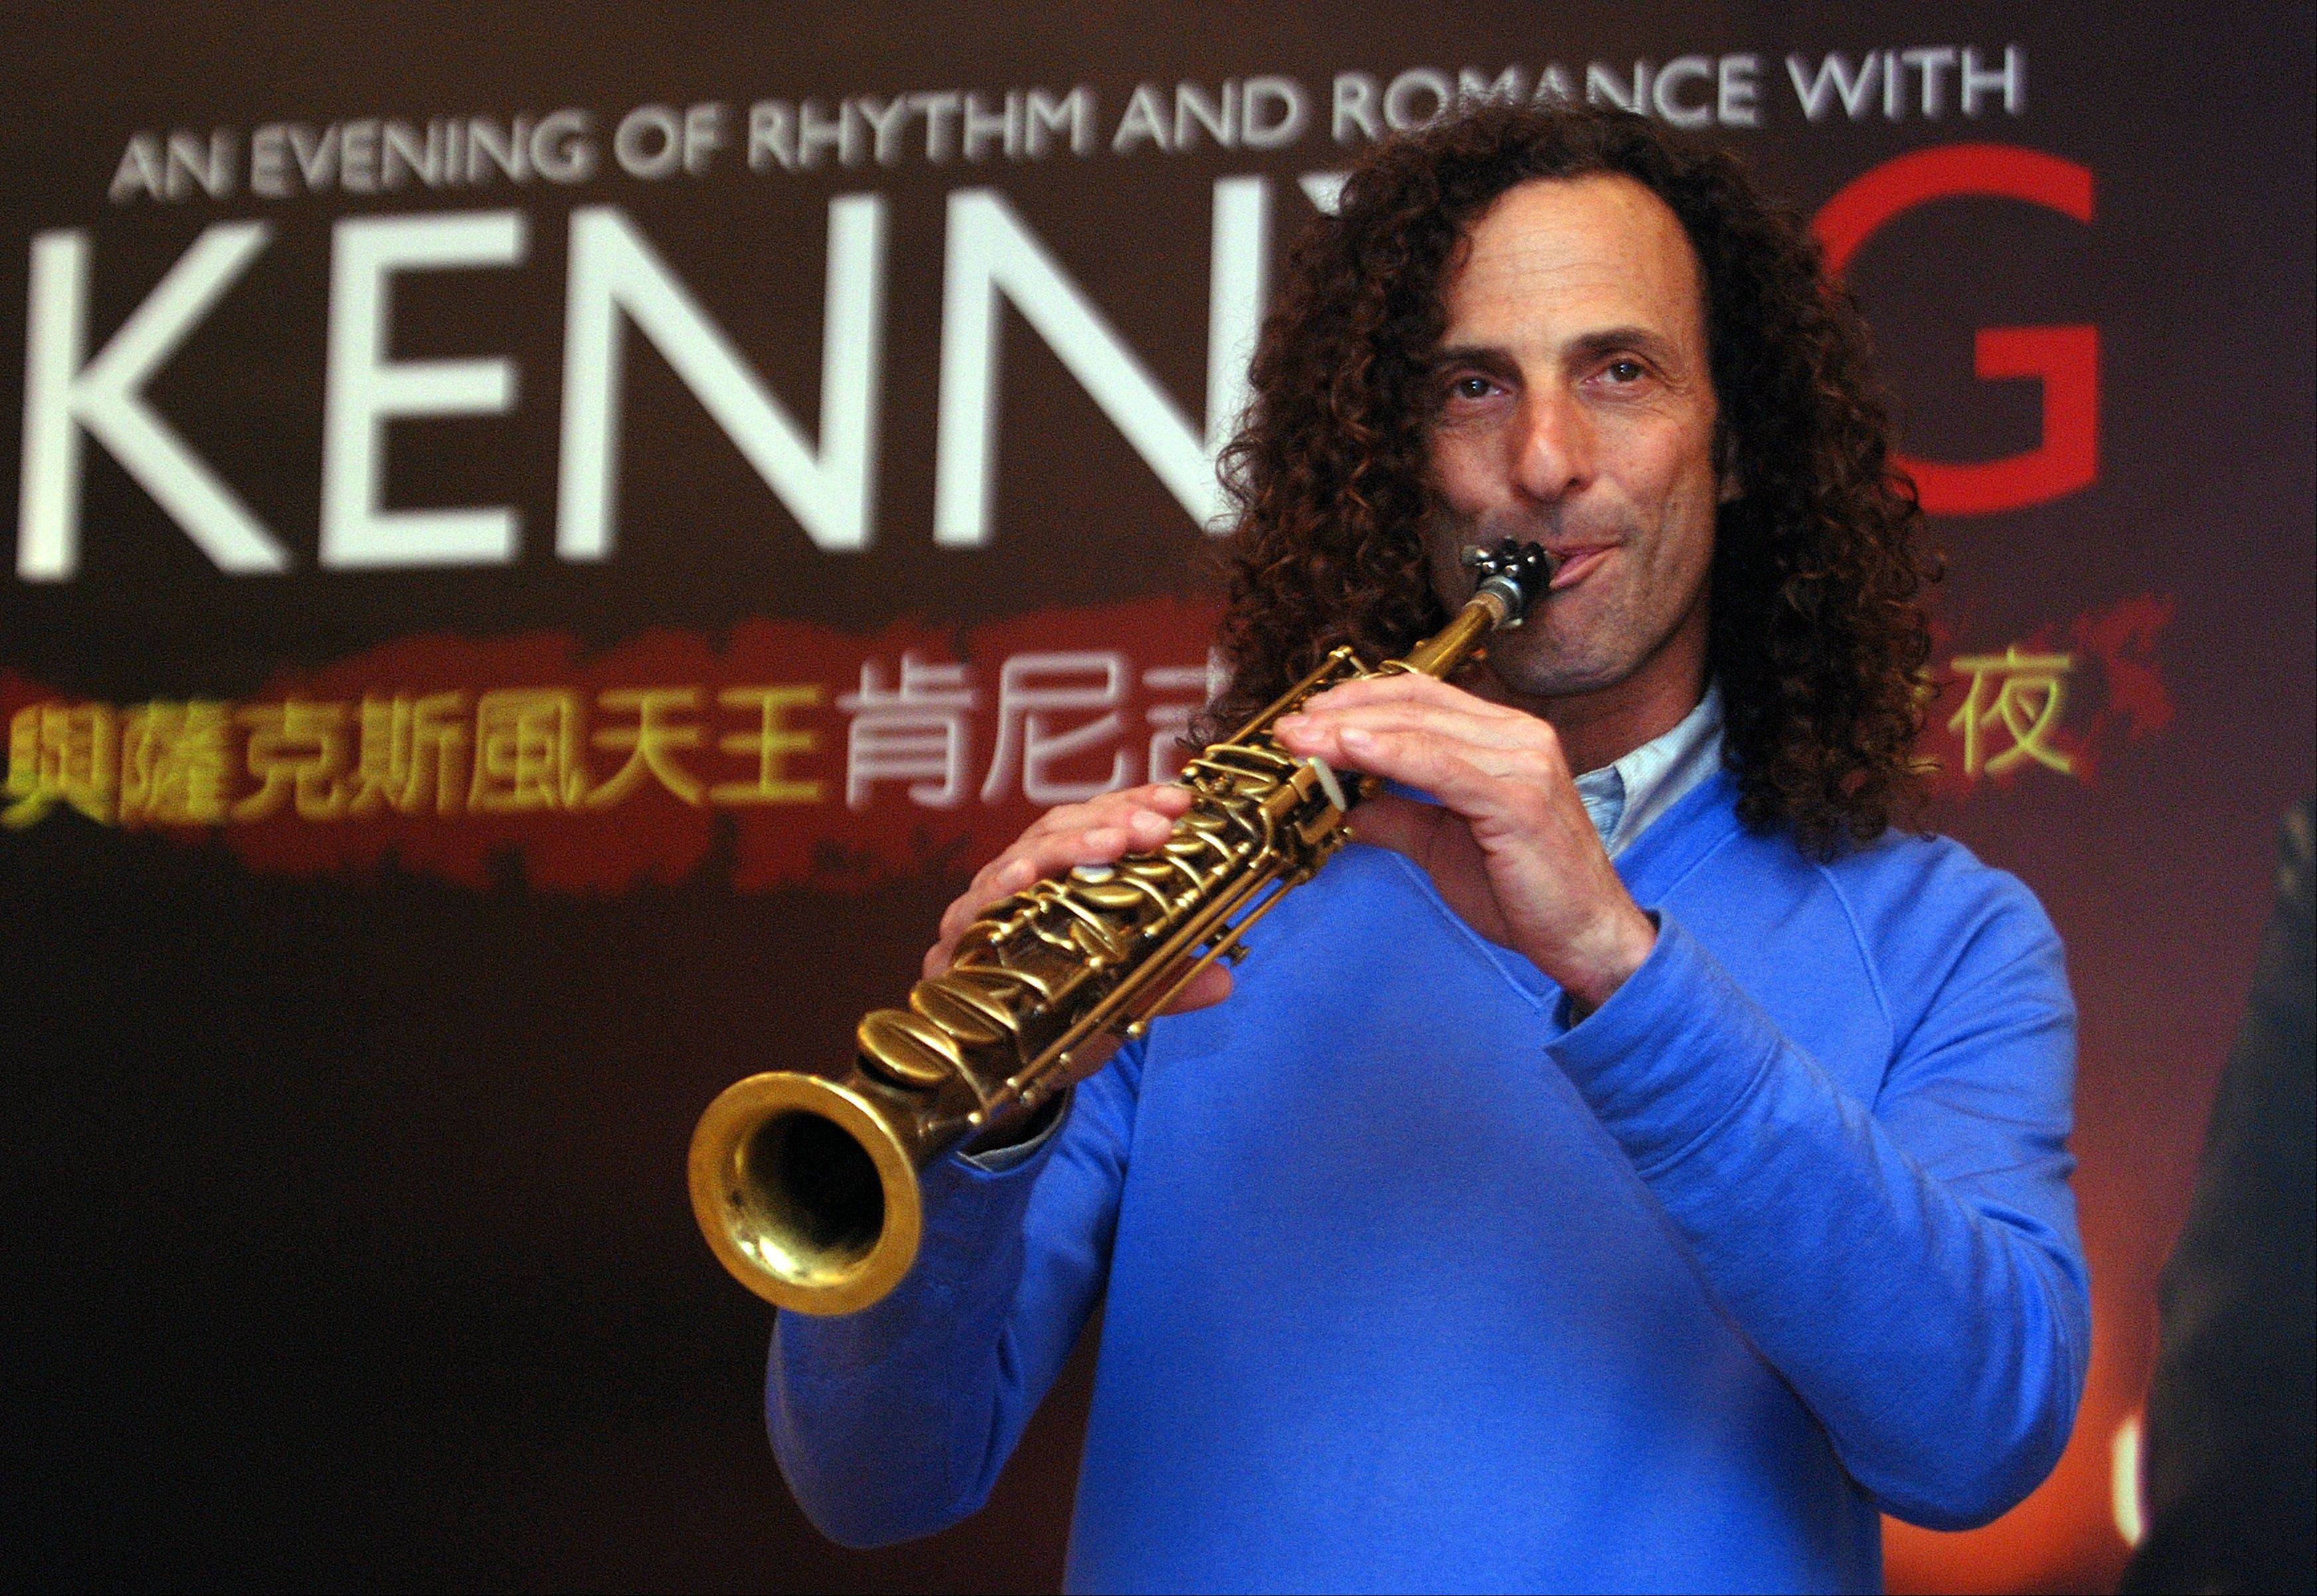 Kenny G, smooth jazz saxophonist, has filed for divorce after 20 years of marriage to Balynda Helene Benson-Gorelick, according to court records.